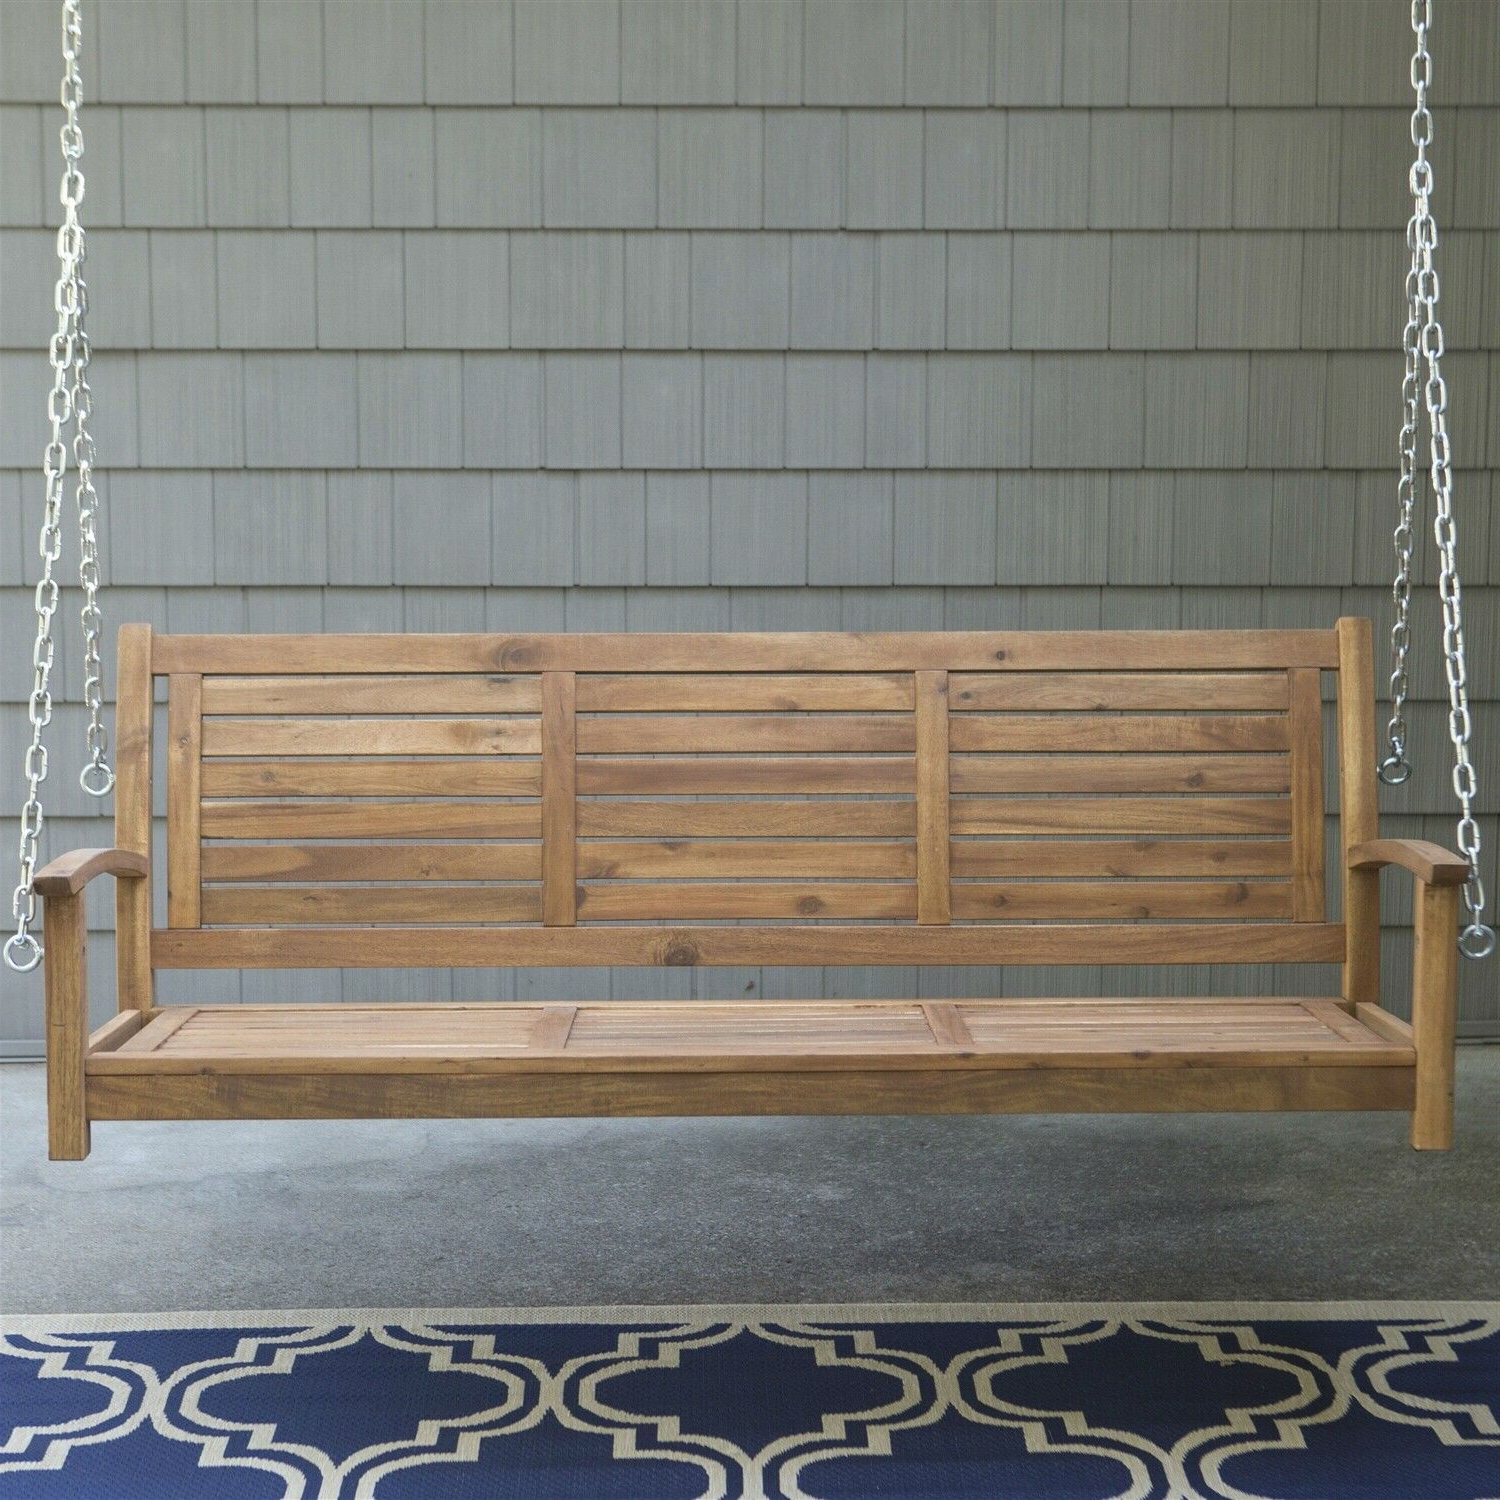 5 Ft Cedar Swings With Springs Intended For Most Recently Released Outdoor 5 Ft Slatted Porch Swing In Natural Acacia Wood With Hanging Chain (View 23 of 25)